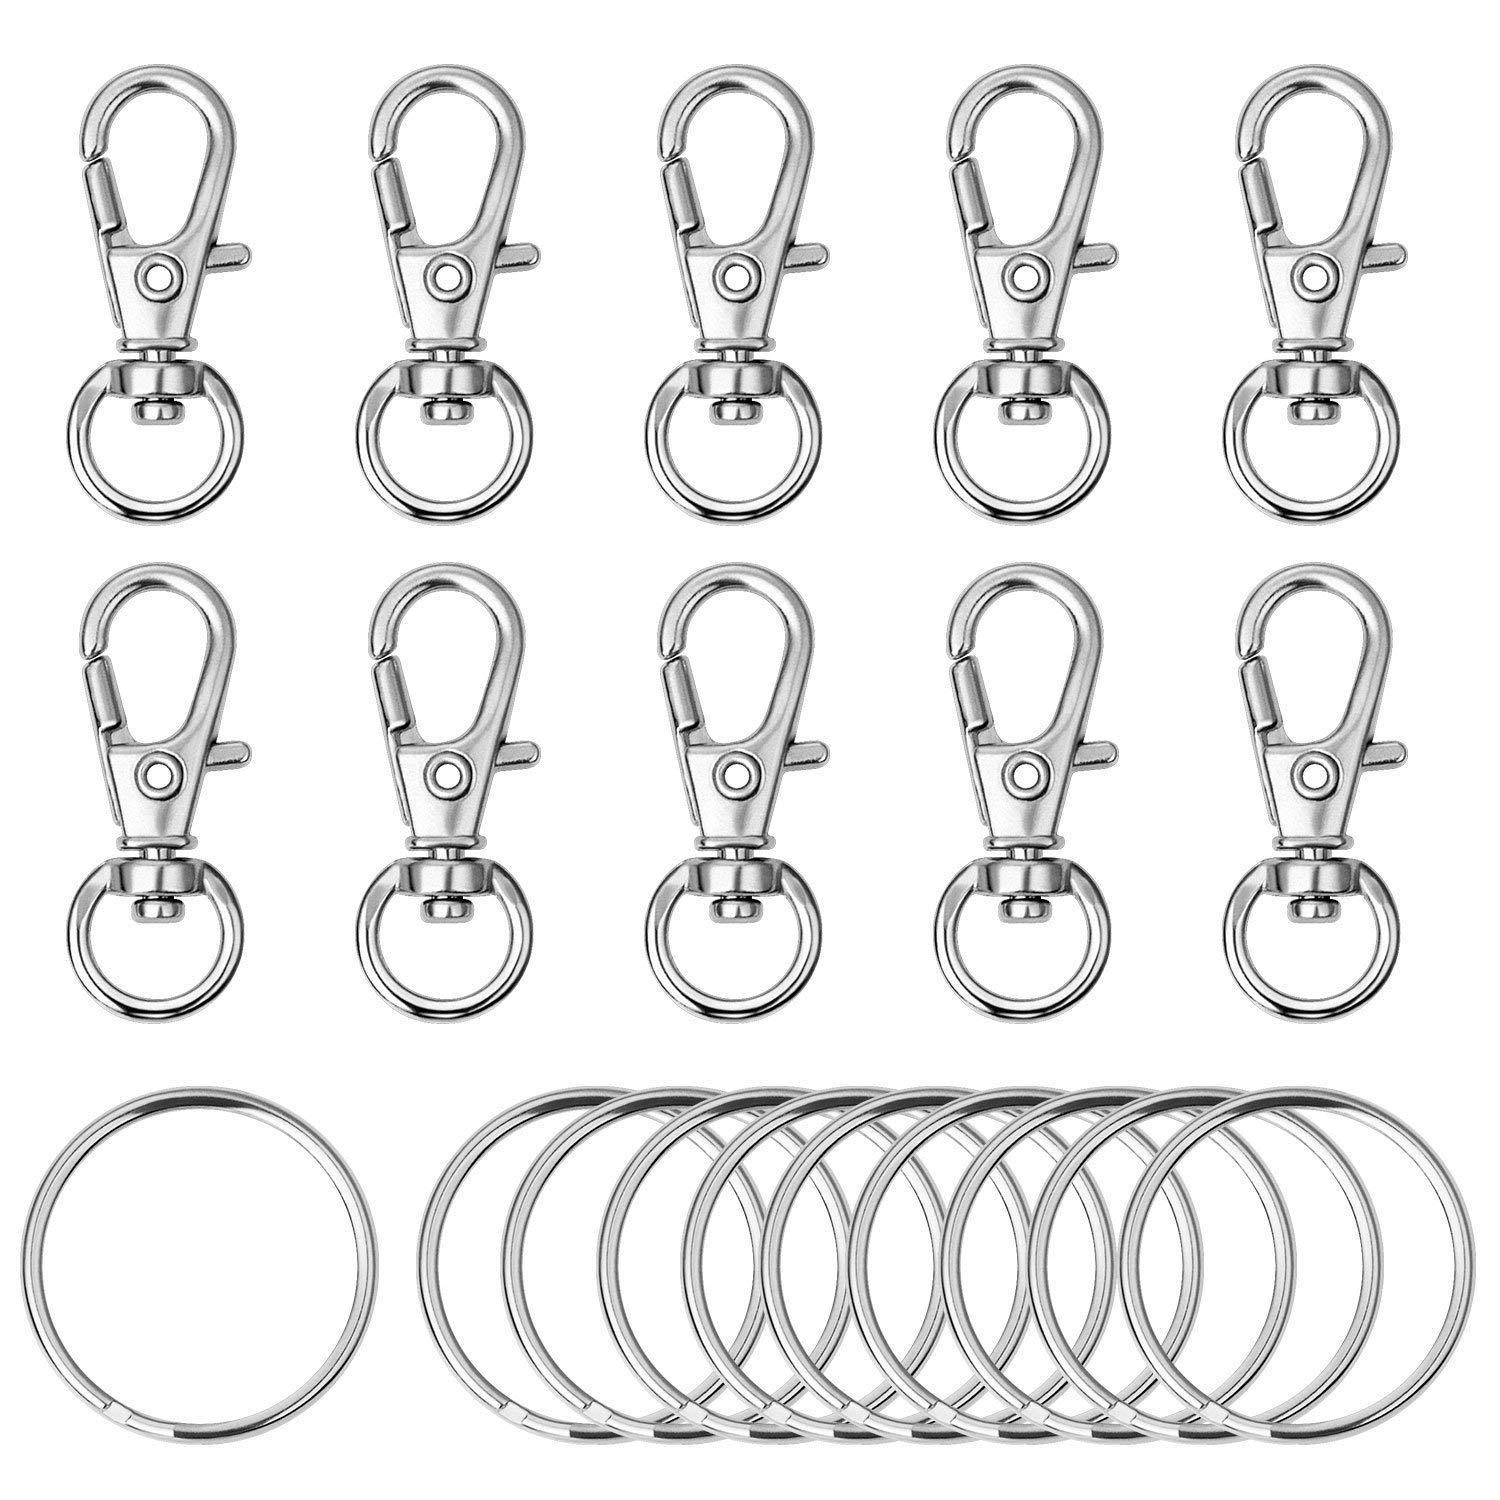 120pcs Swivel Lanyard Snap Hook Metal Lobster Clasp with Key Rings DIY Key Keyring Jewely Key Cheychain Key Chain Supplies Silver Color